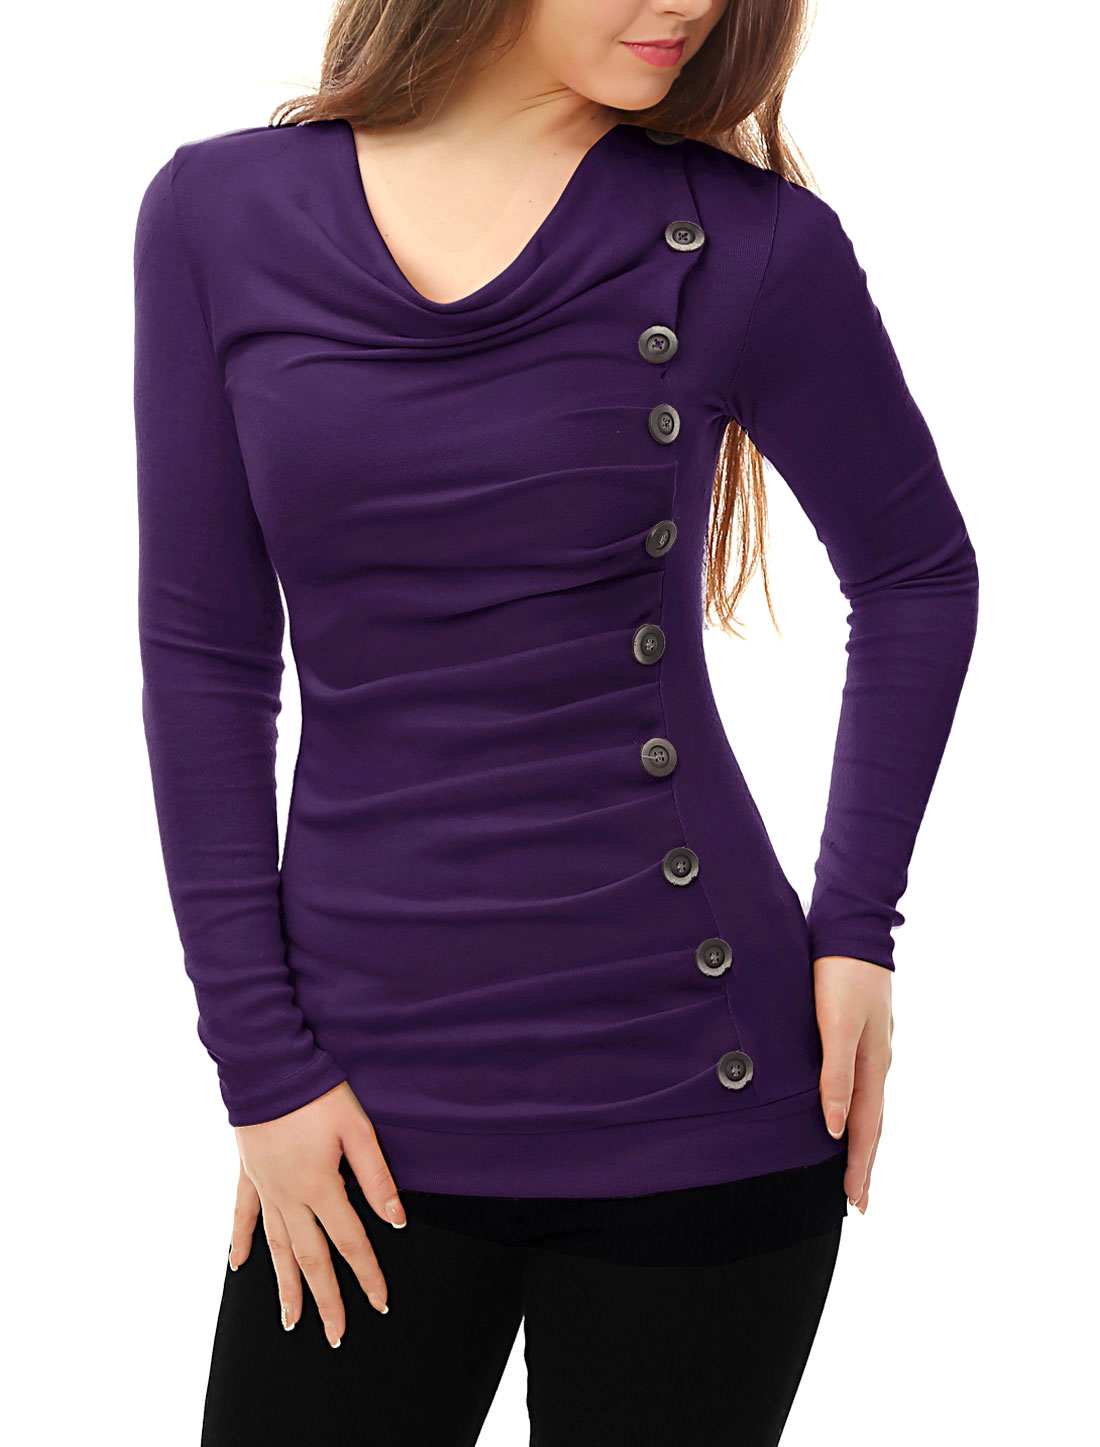 Women Cowl Neck Long Sleeves Buttons Decor Ruched Top Purple XL